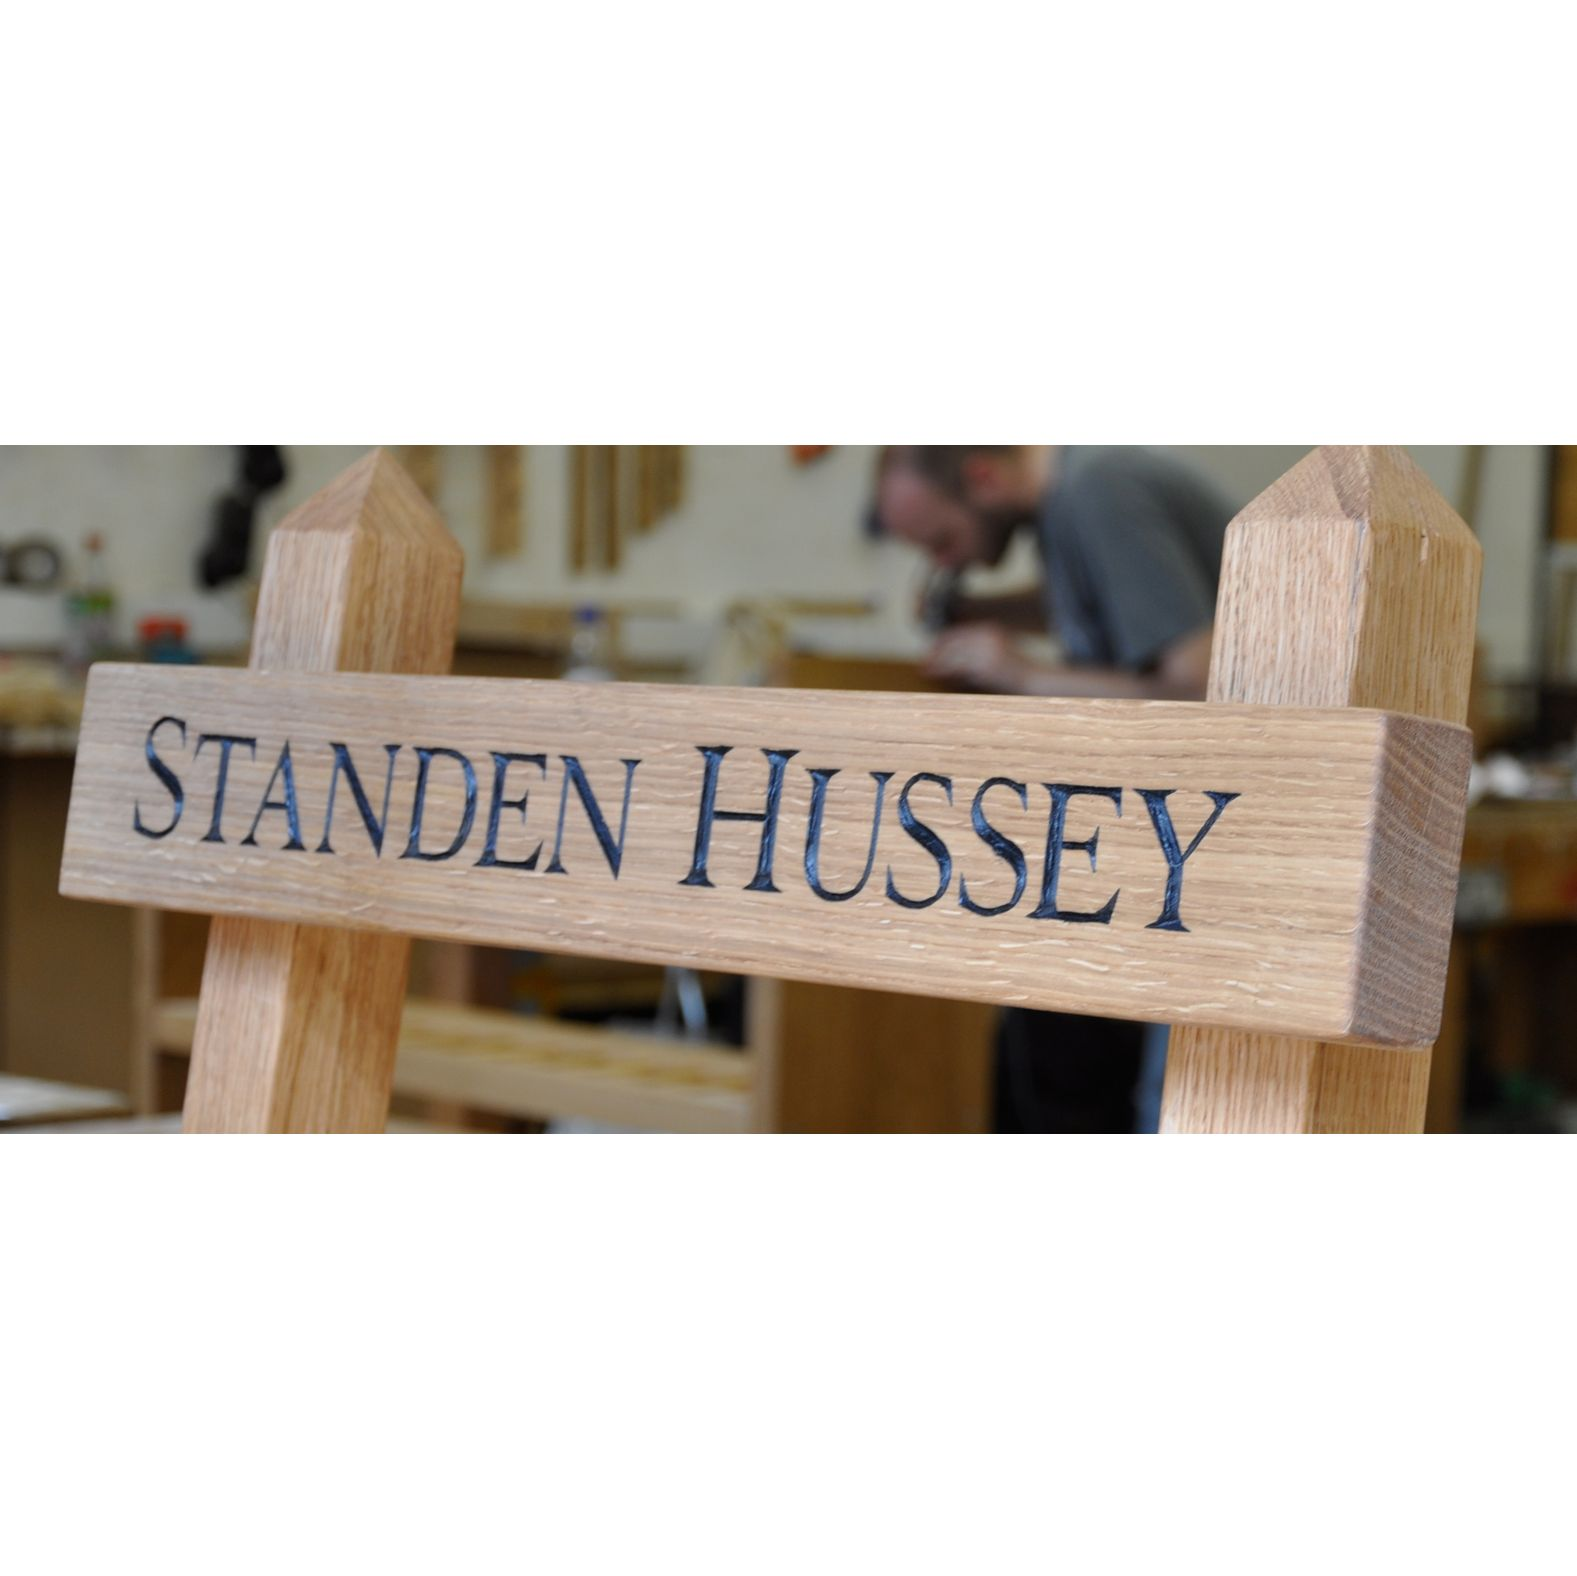 Personalised Wedding Gifts John Lewis : Buy The Oak And Rope Company Personalised House Sign Online at ...